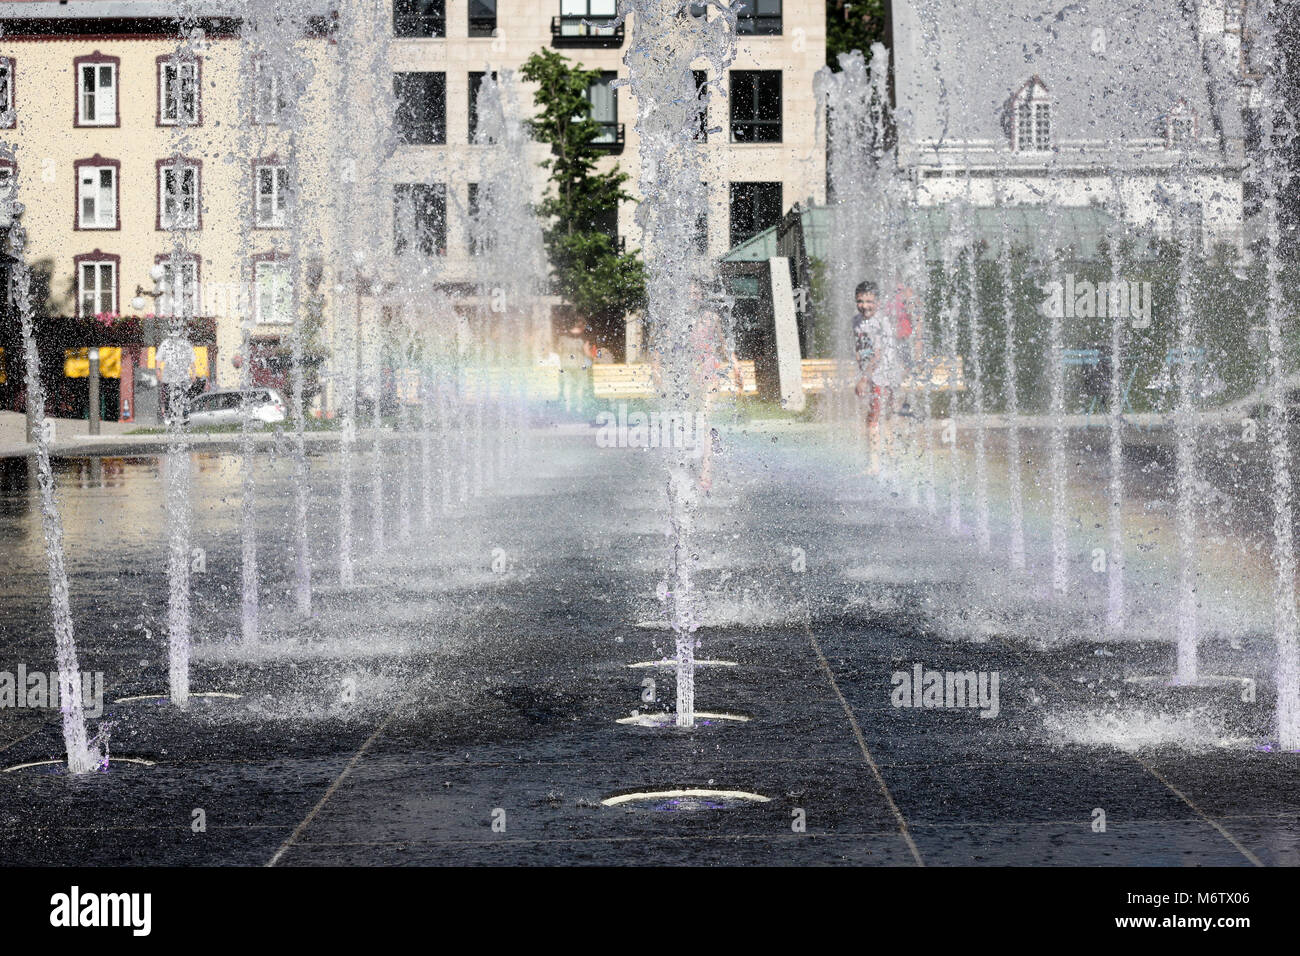 Fountains in Quebec City with a rainbow effect and children playing in the background on a sunny day. - Stock Image